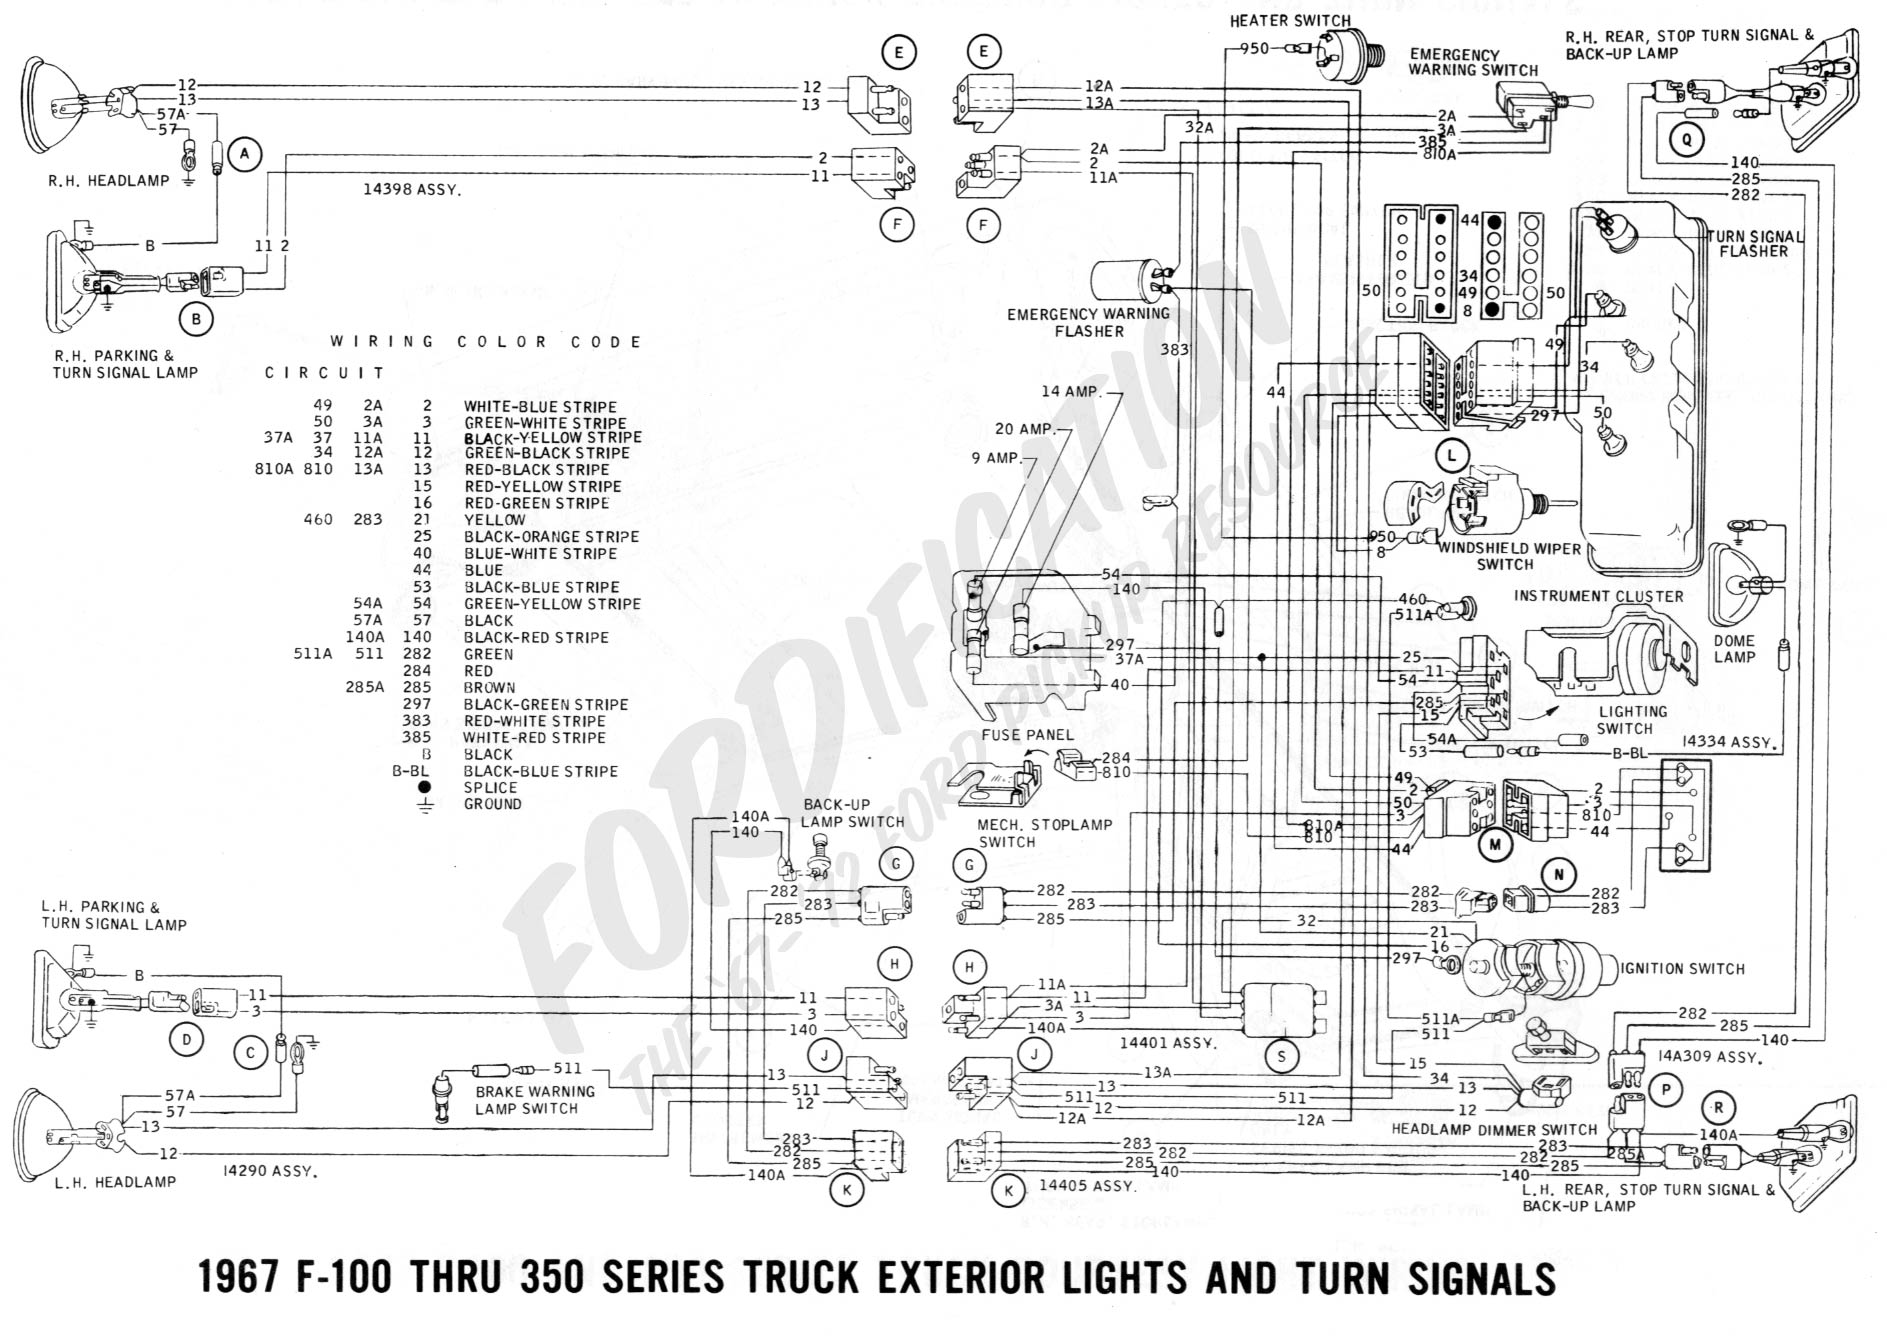 88 F150 Horn Location additionally 2007 Ford F 150 Parts Diagram Html besides Ford Parts Diagrams furthermore 332070172497469452 as well Nissan Bose Stereo Wiring Diagram. on 1996 ford explorer fuse box diagram